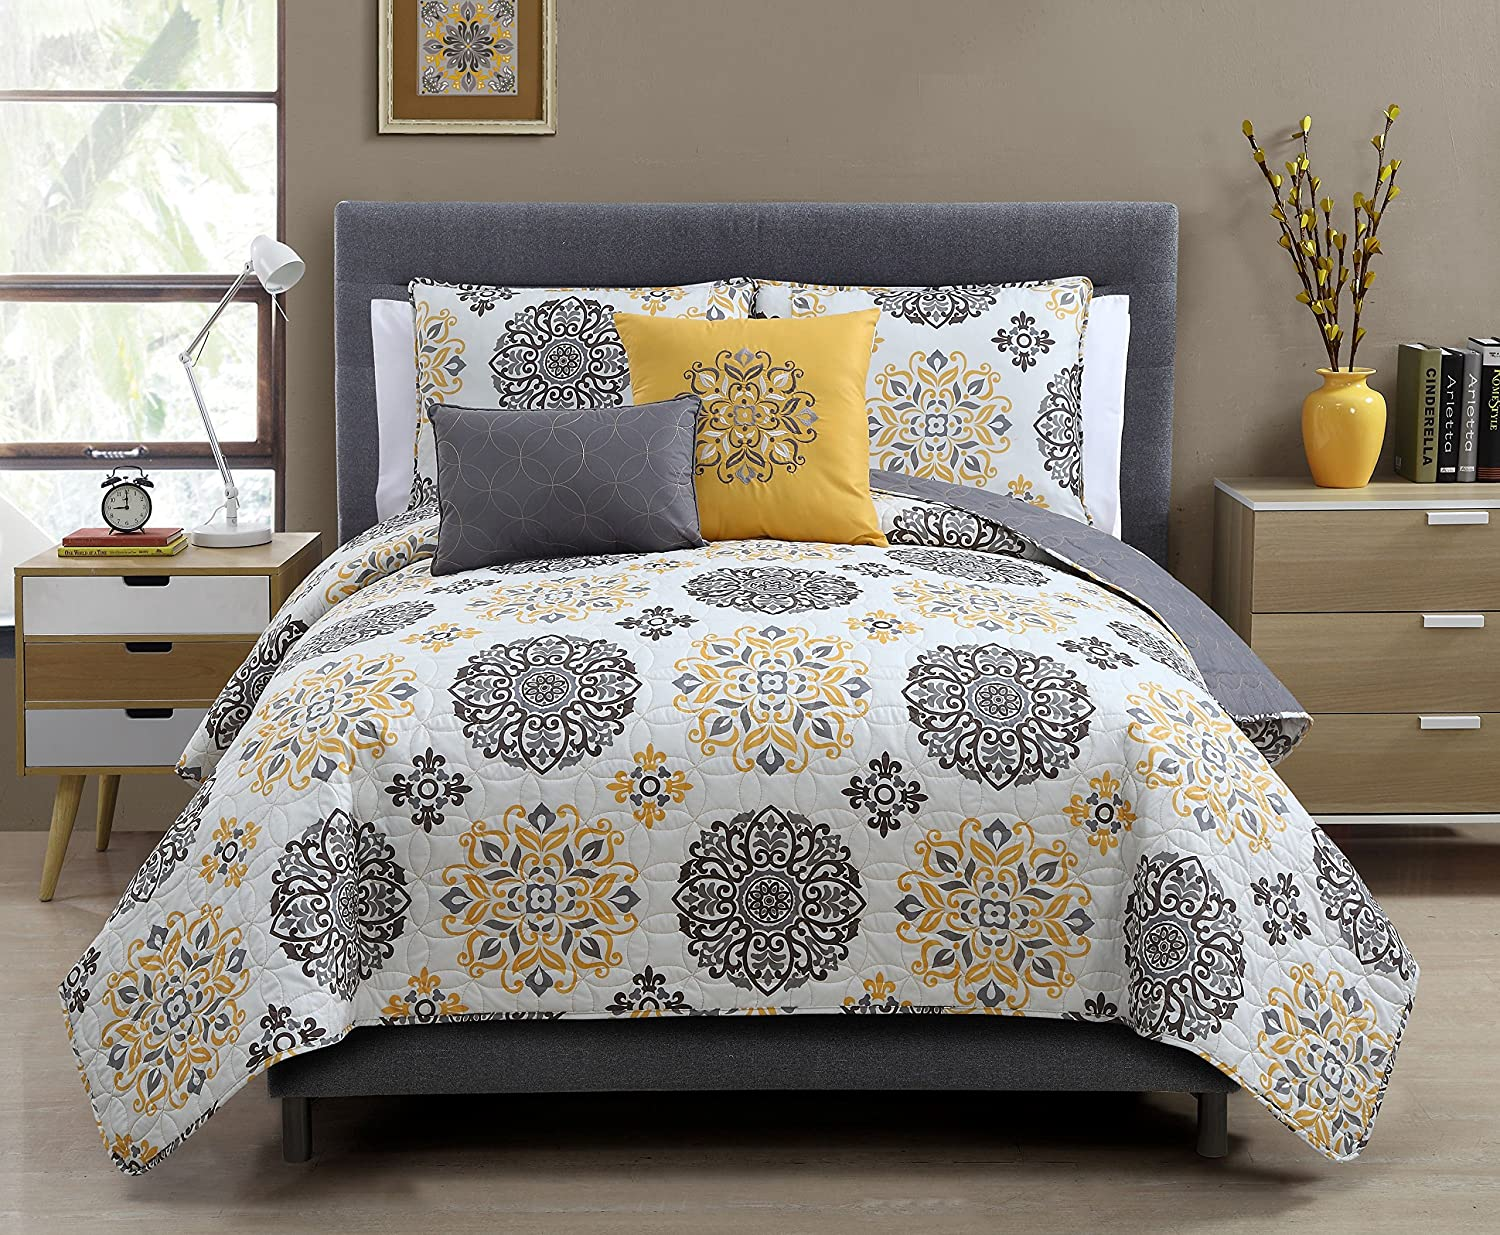 king size comforter sets amazon Amazon.com: The Lakeside Collection 5 Pc. Quilt Set Hayden   King  king size comforter sets amazon